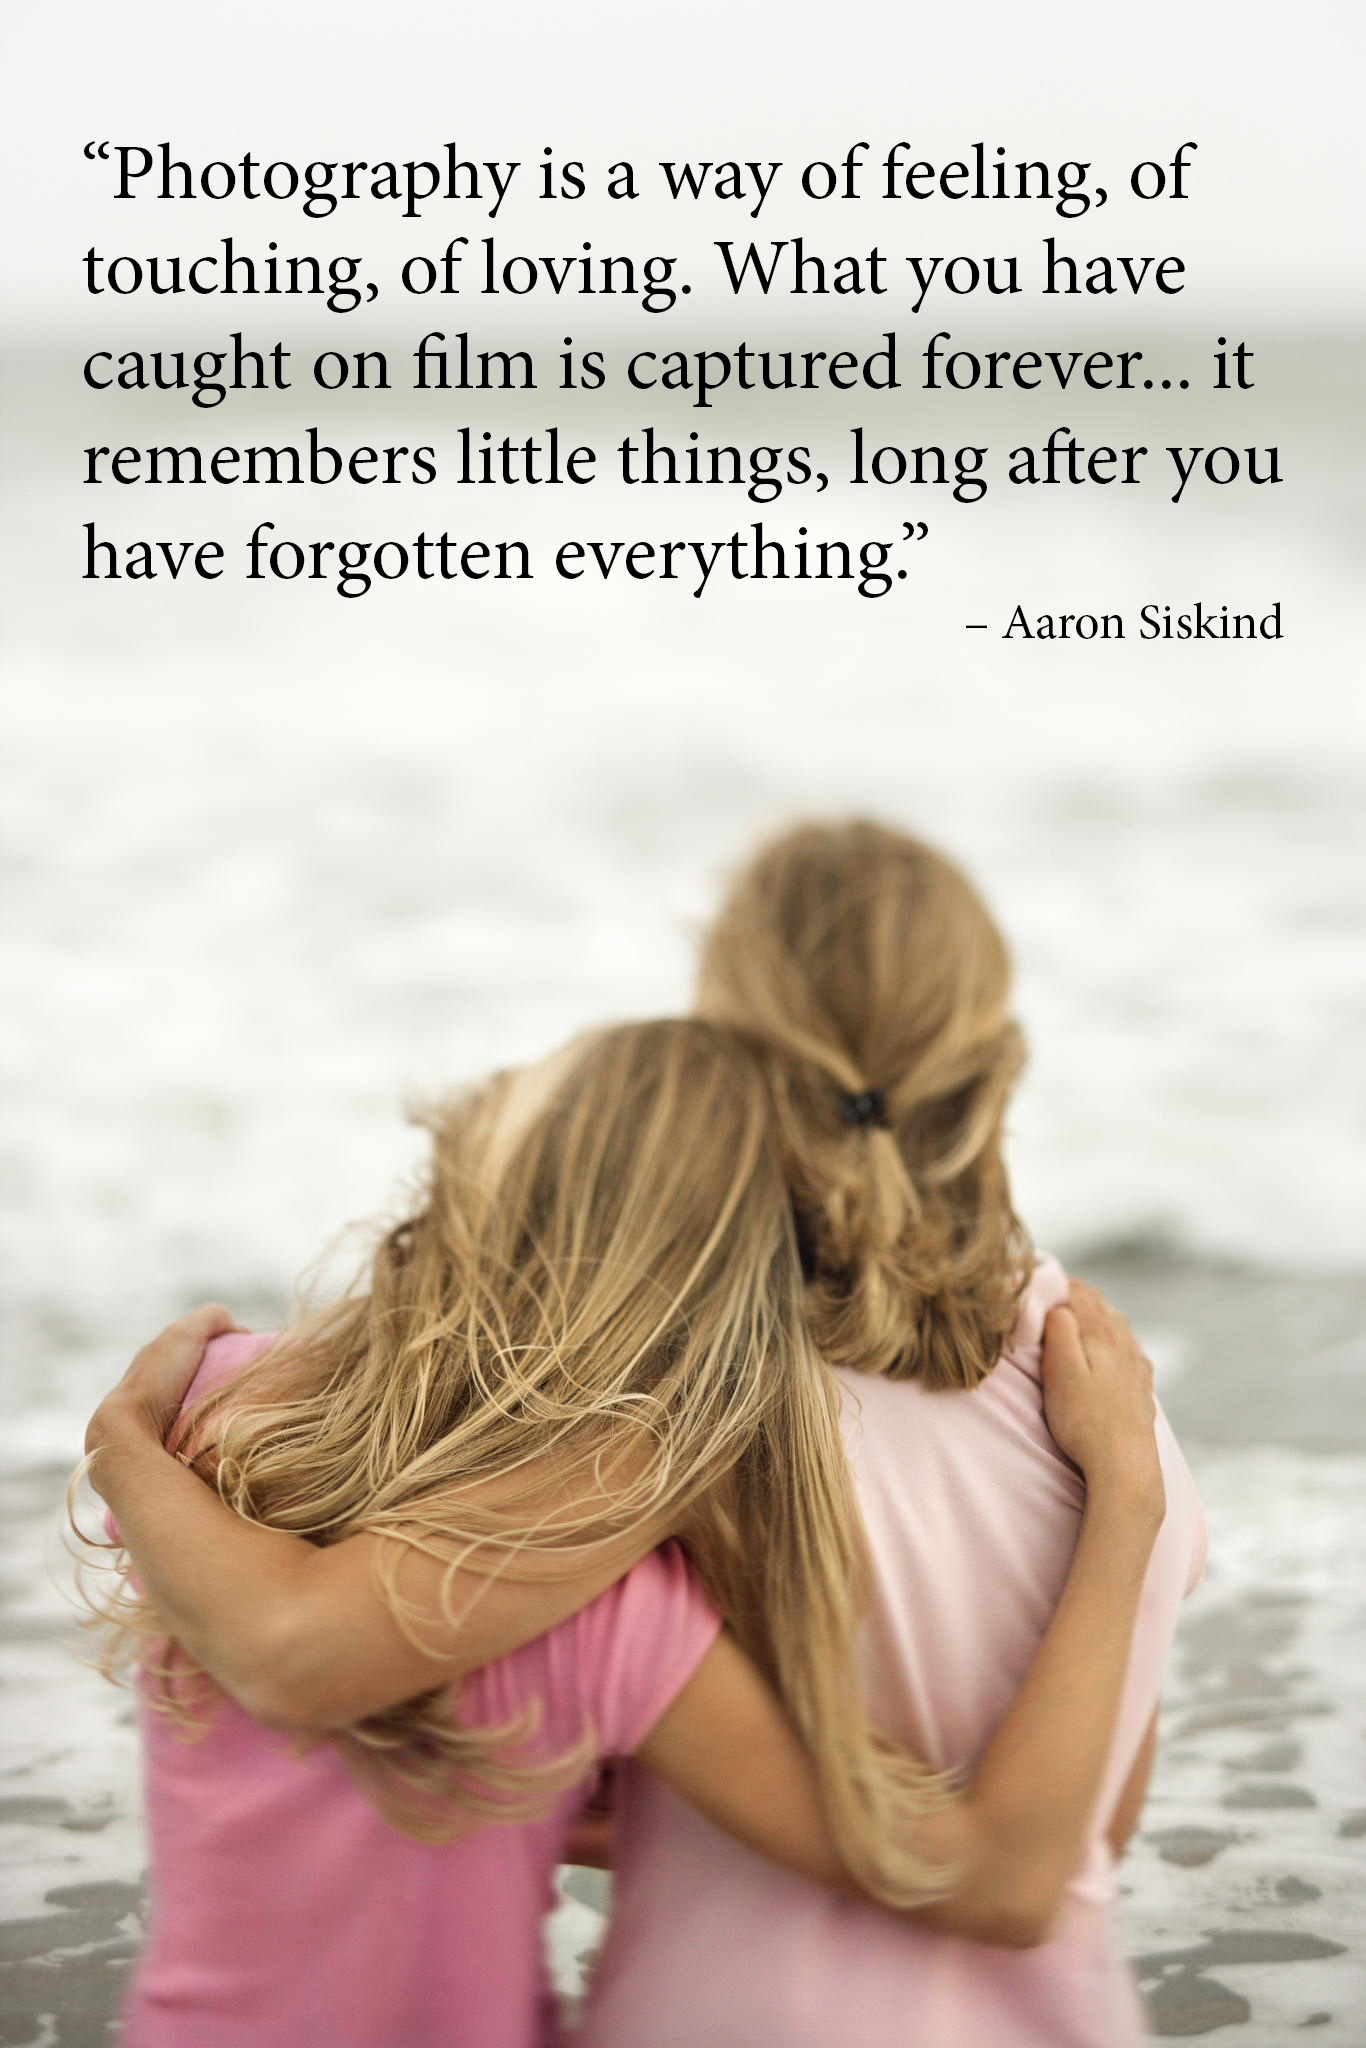 photography quotes - Mother and Daughter at the Beach